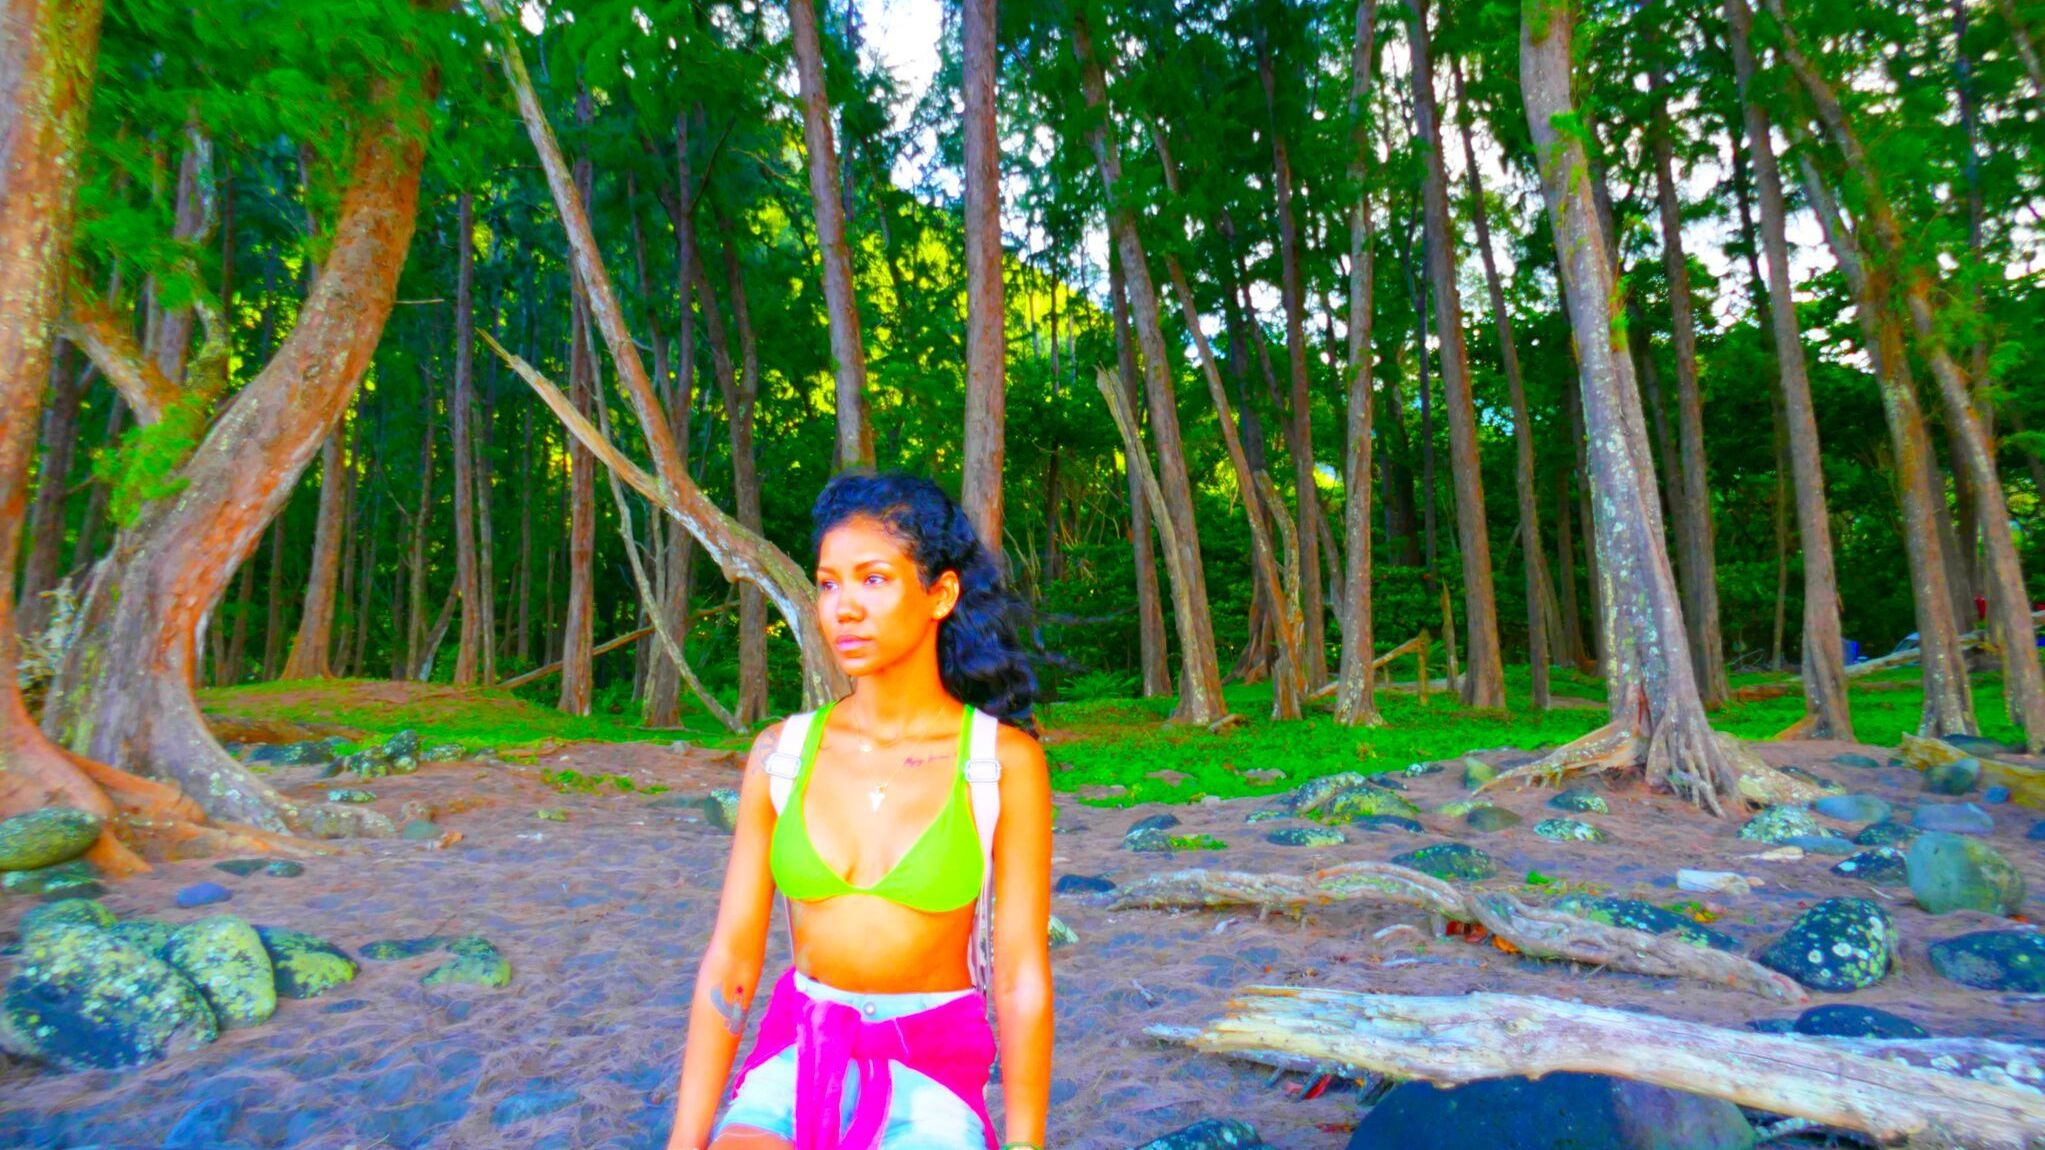 Obligar responder lana  Jhené Aiko Narrates Her Psychedelic 'Trip' Through Death, Love And  Reawakening : All Songs Considered : NPR